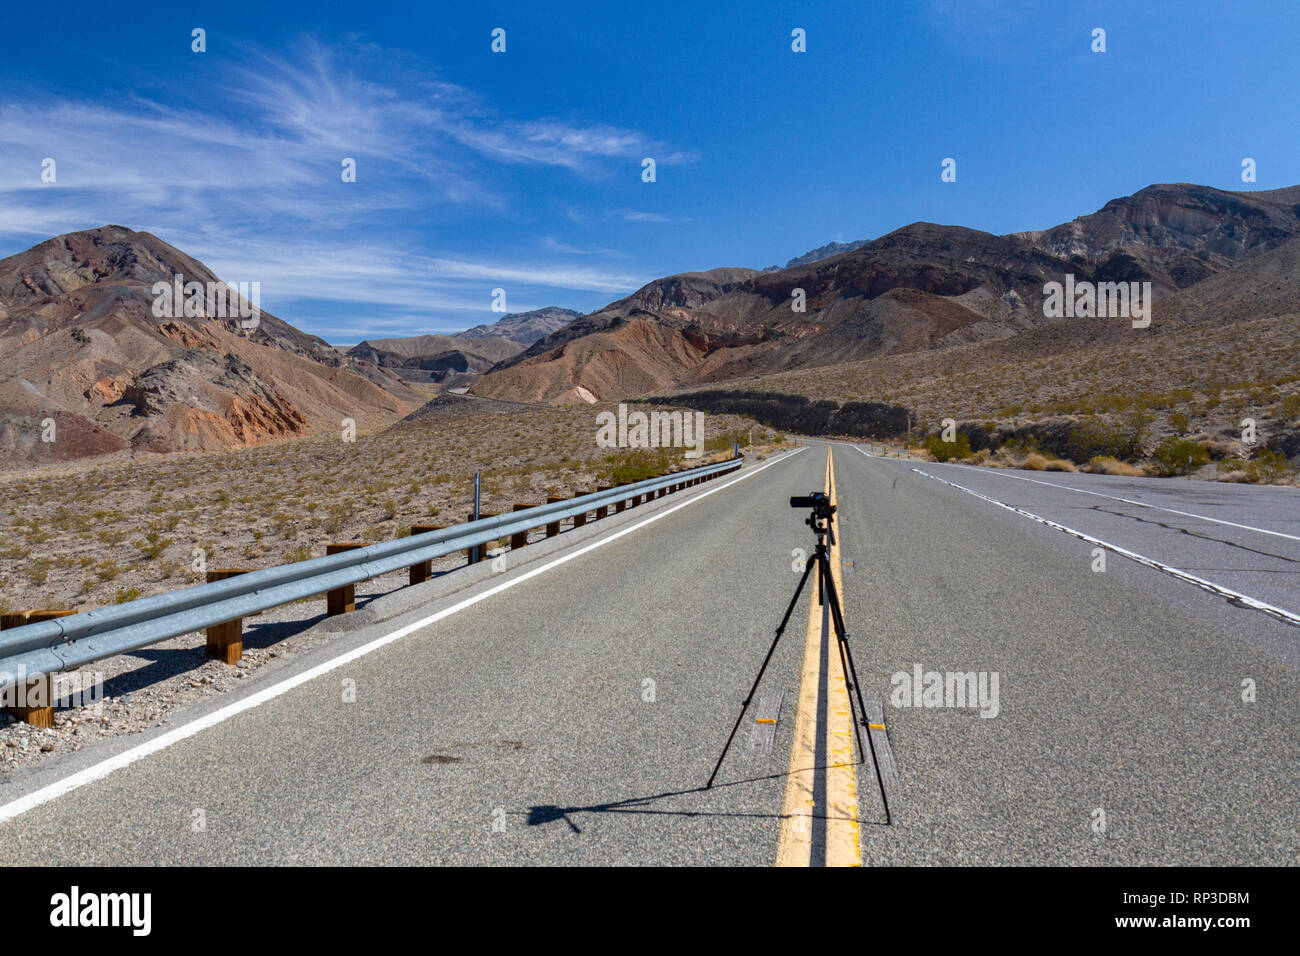 Video camera set up in the centre of the road towards Towne Pass on California State Route 190, Death Valley National Park, CA, USA. Stock Photo